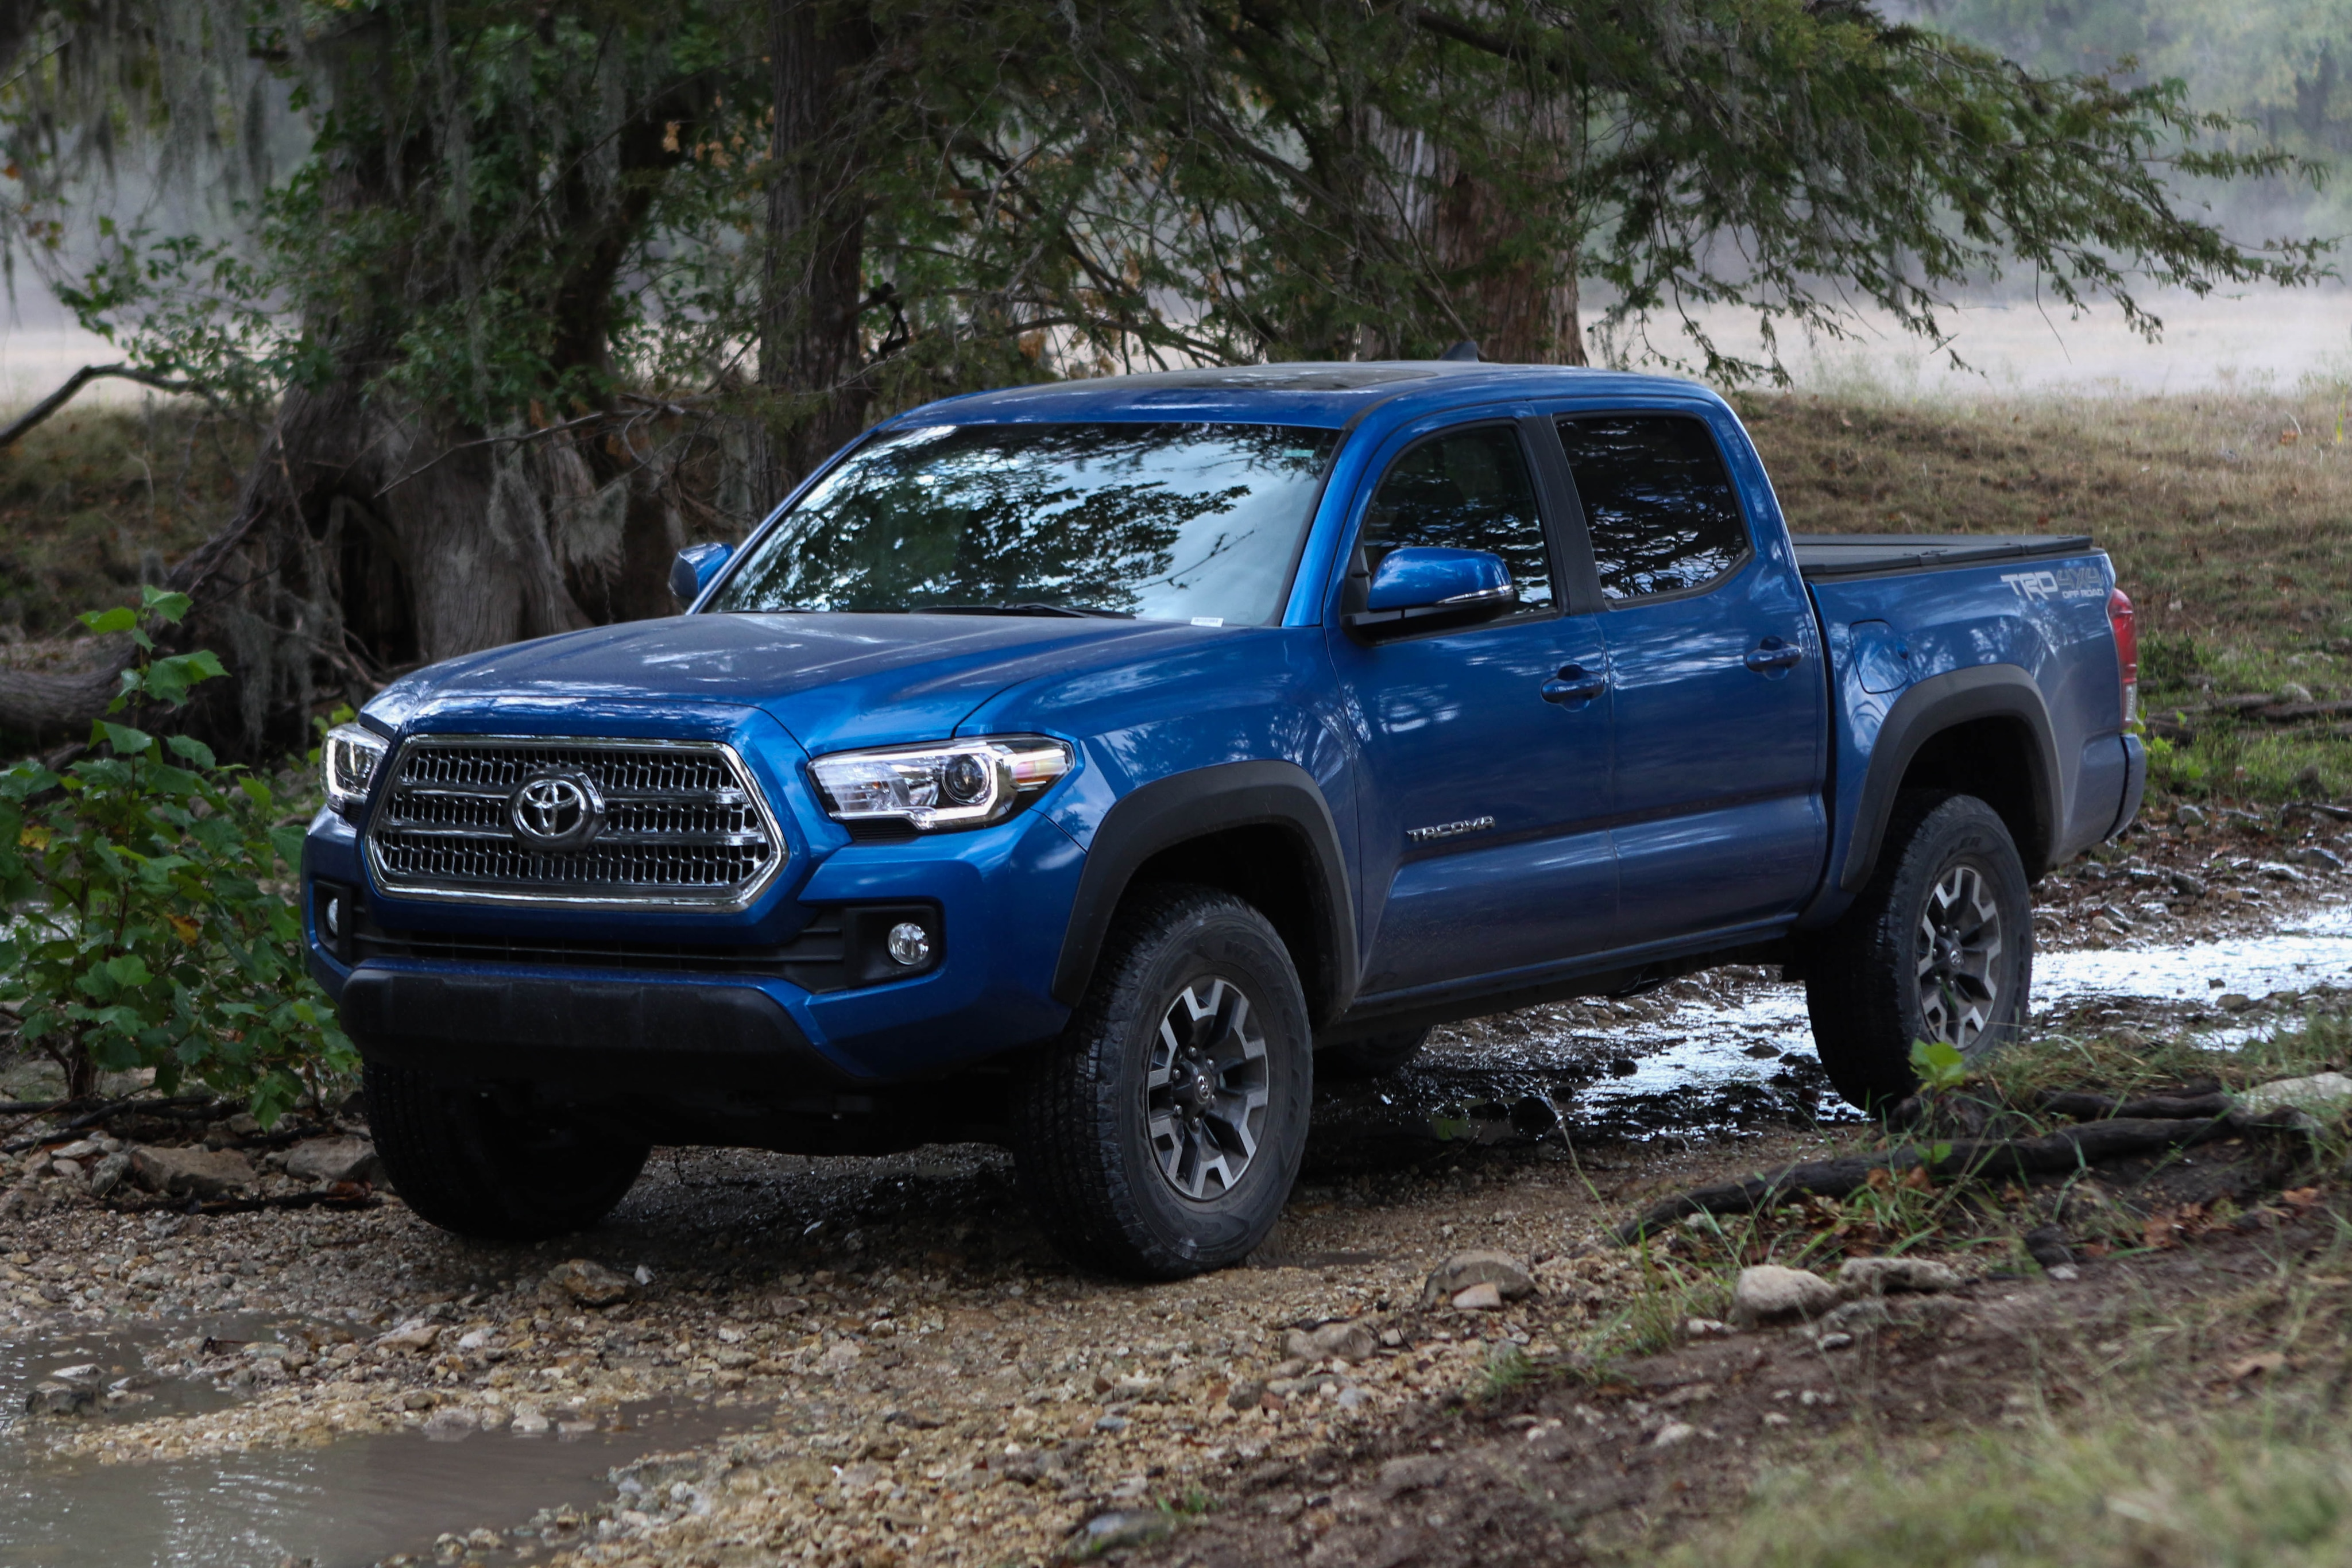 Toyota Tacoma Owners Manual: If your vehicle needs to be towed